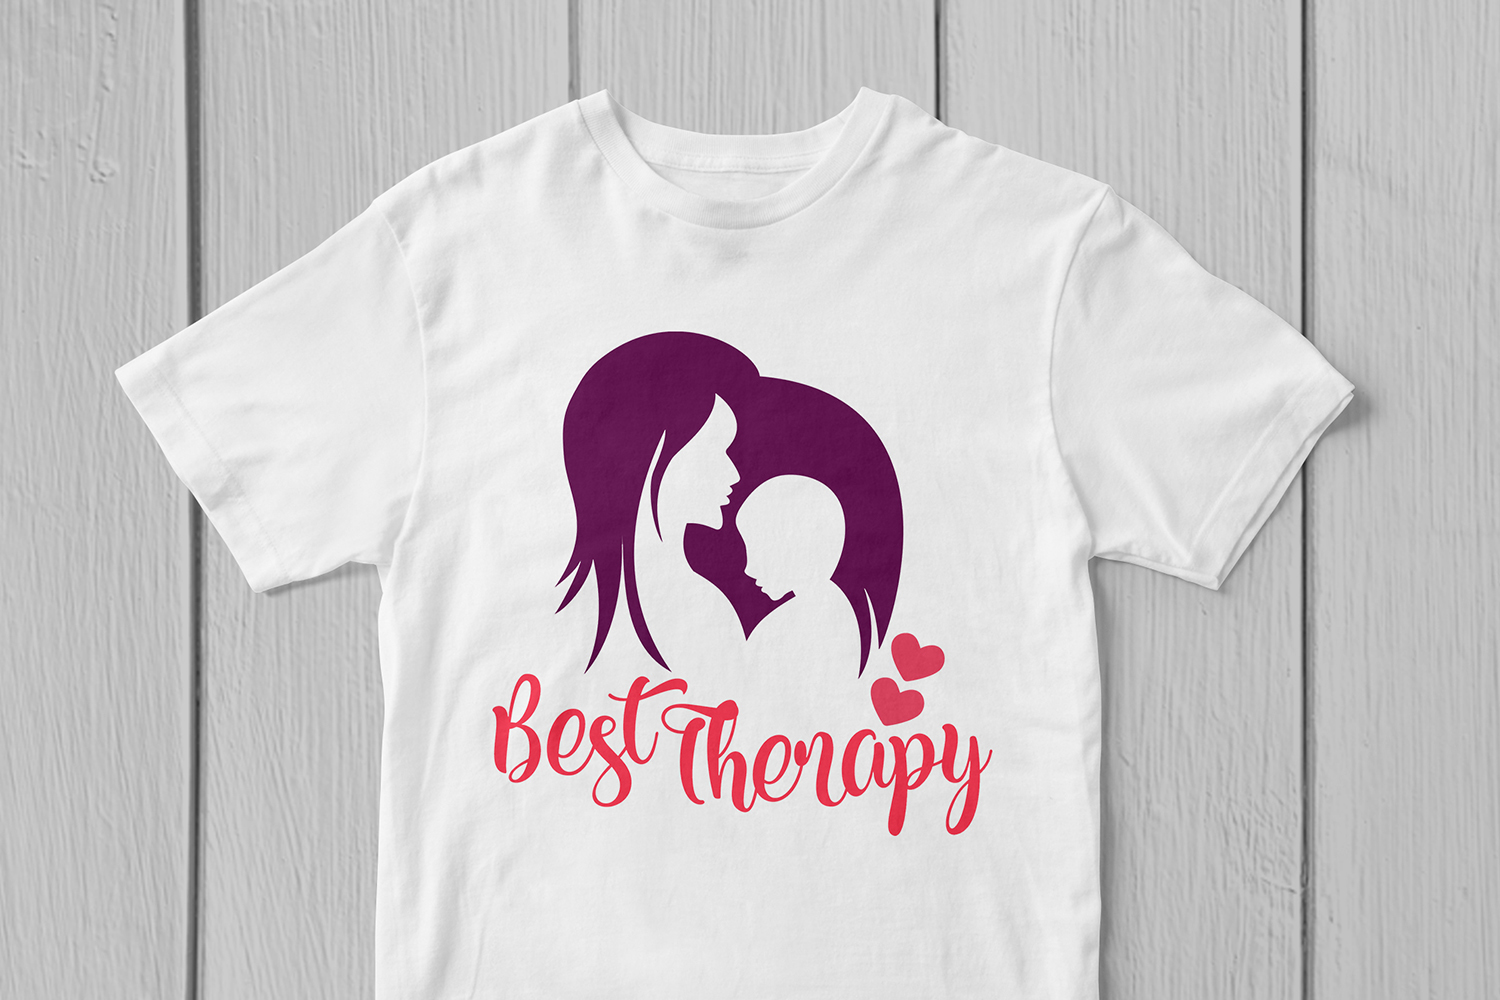 Best Therapy Mom's Love - Mother SVG EPS DXF PNG Cut Files example image 3